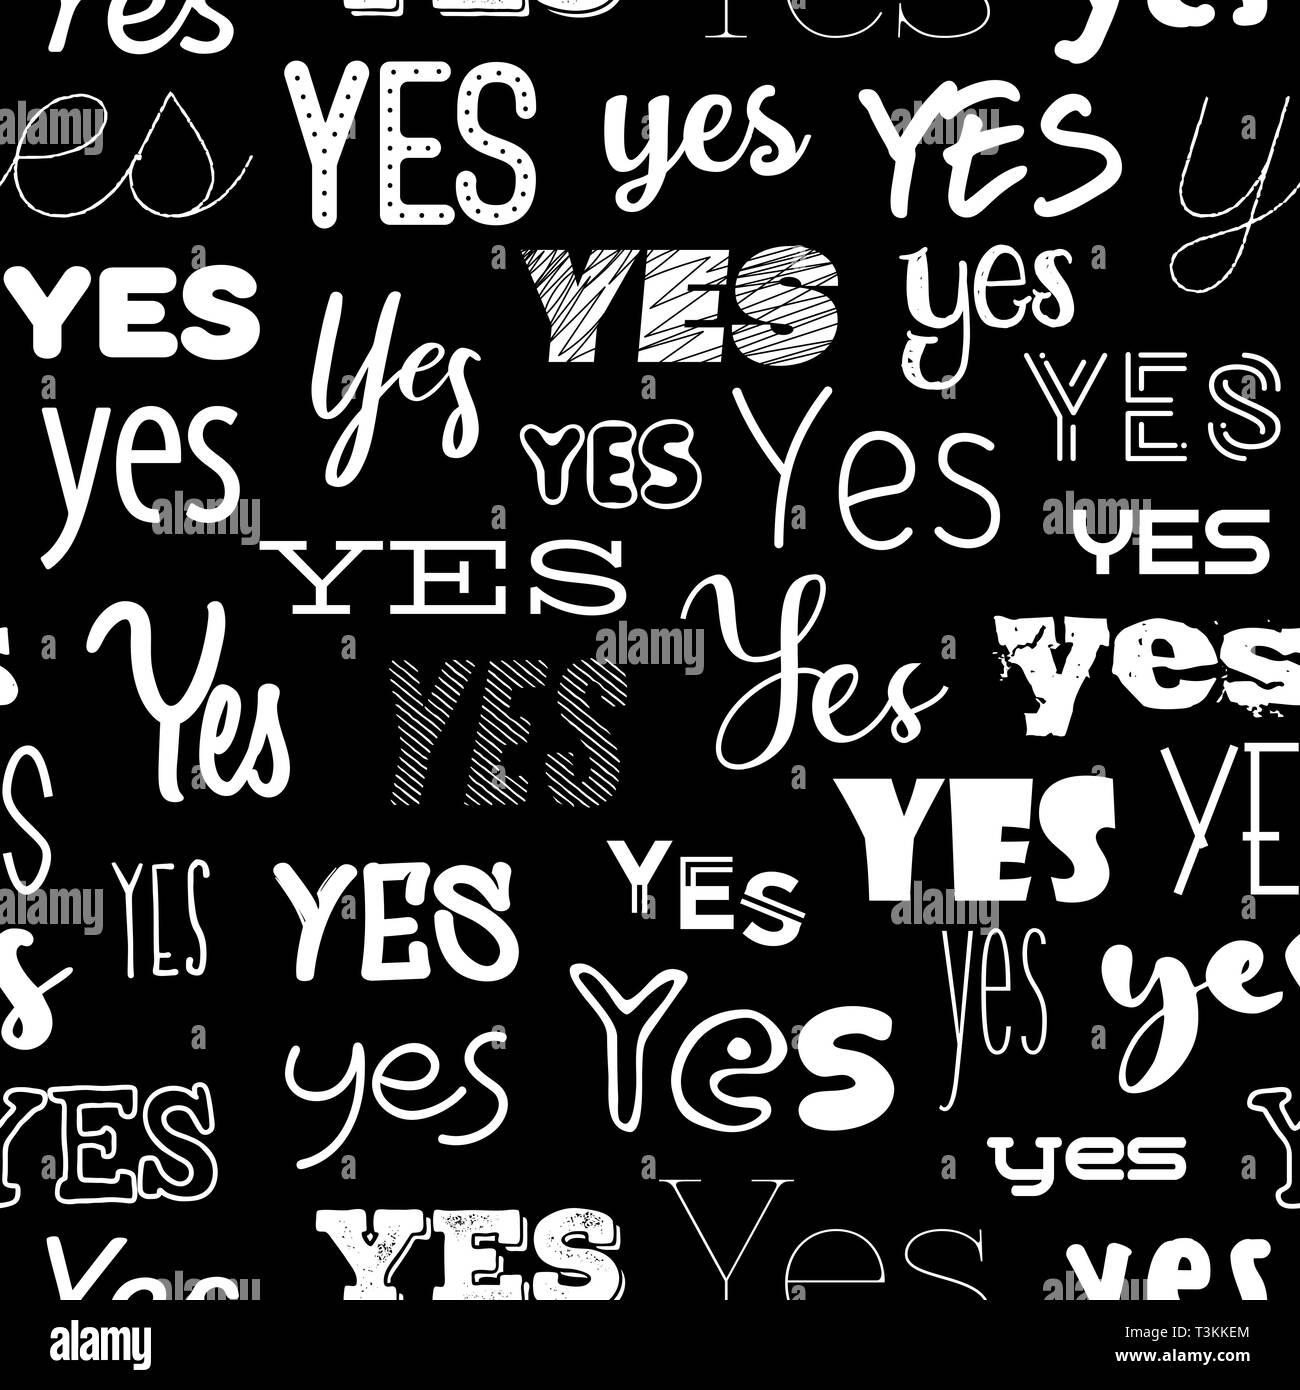 YES various lettering. Abstract typographic graphic background. Seamless pattern. - Stock Image